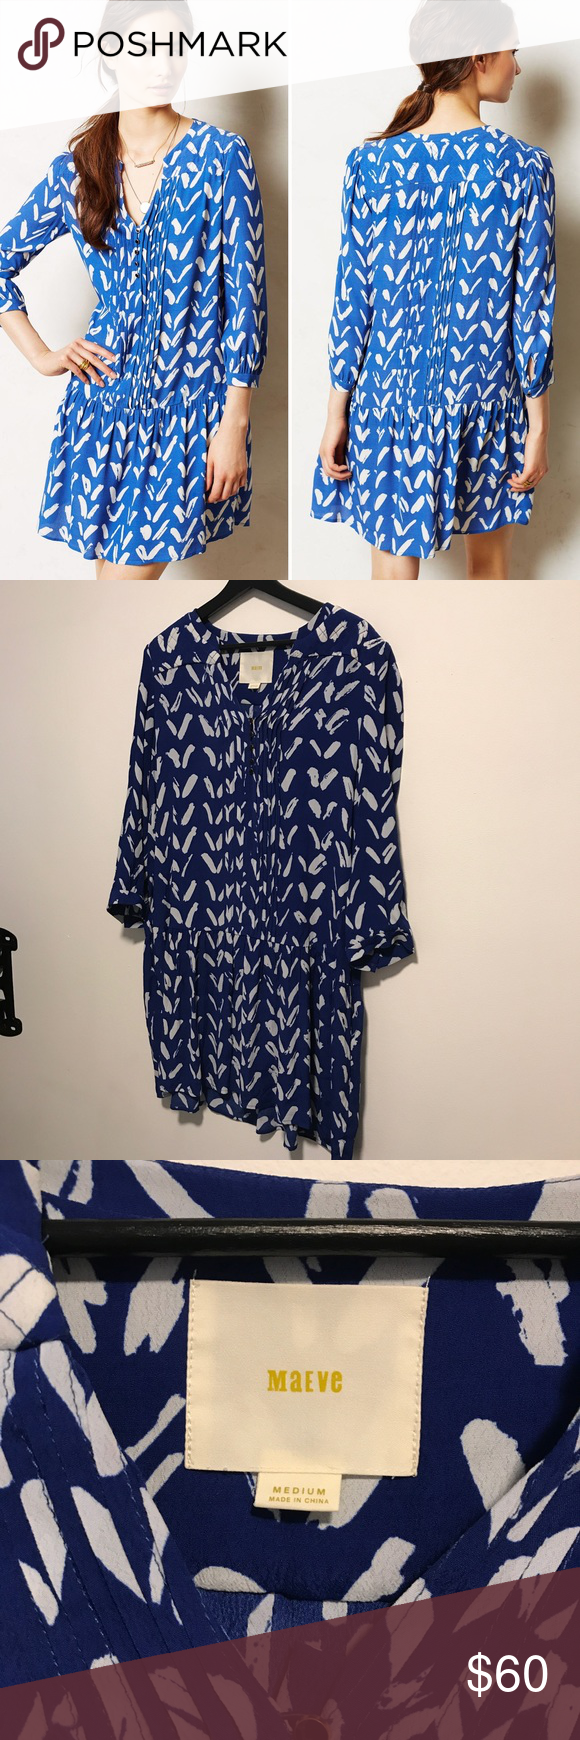 e64a82e8bd892 Anthropologie Maeve Caravane Tunic Dress Adorable blue and white printed  tunic drop waist dress from Anthropologie brand Maeve. Size medium.